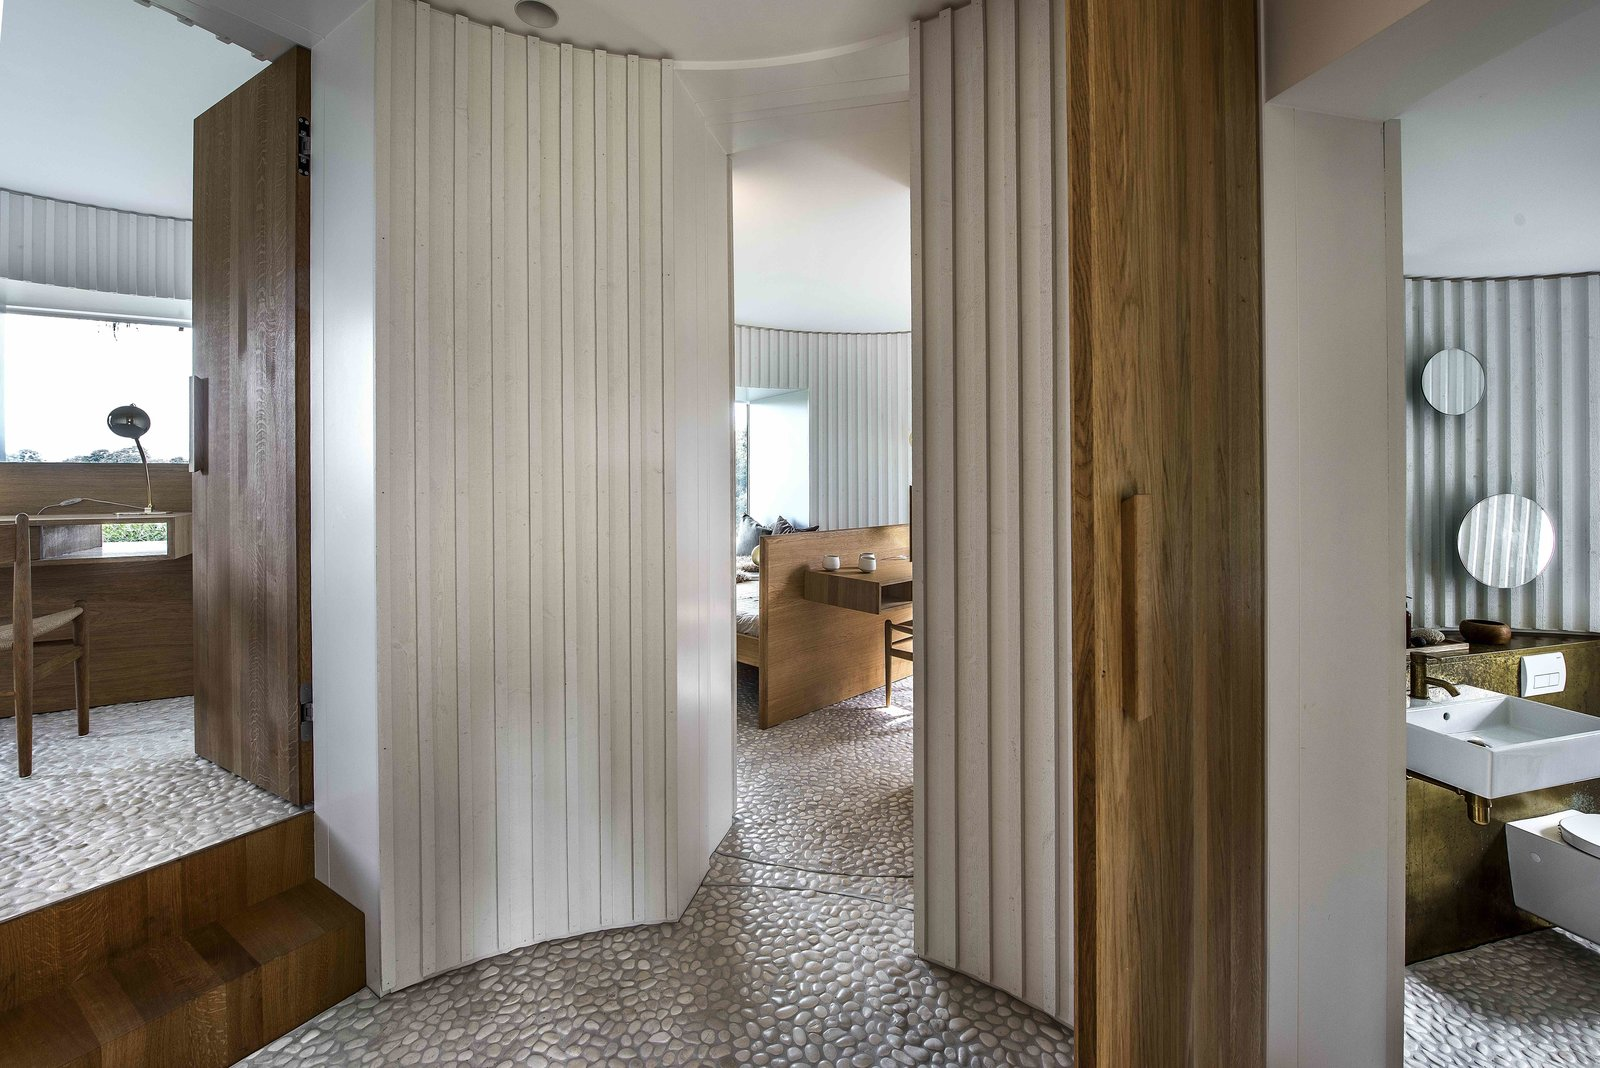 Hallway  Photo 6 of 15 in Stay in This Danish Vacation Home Made Up of 9 Log-Clad Cylinders